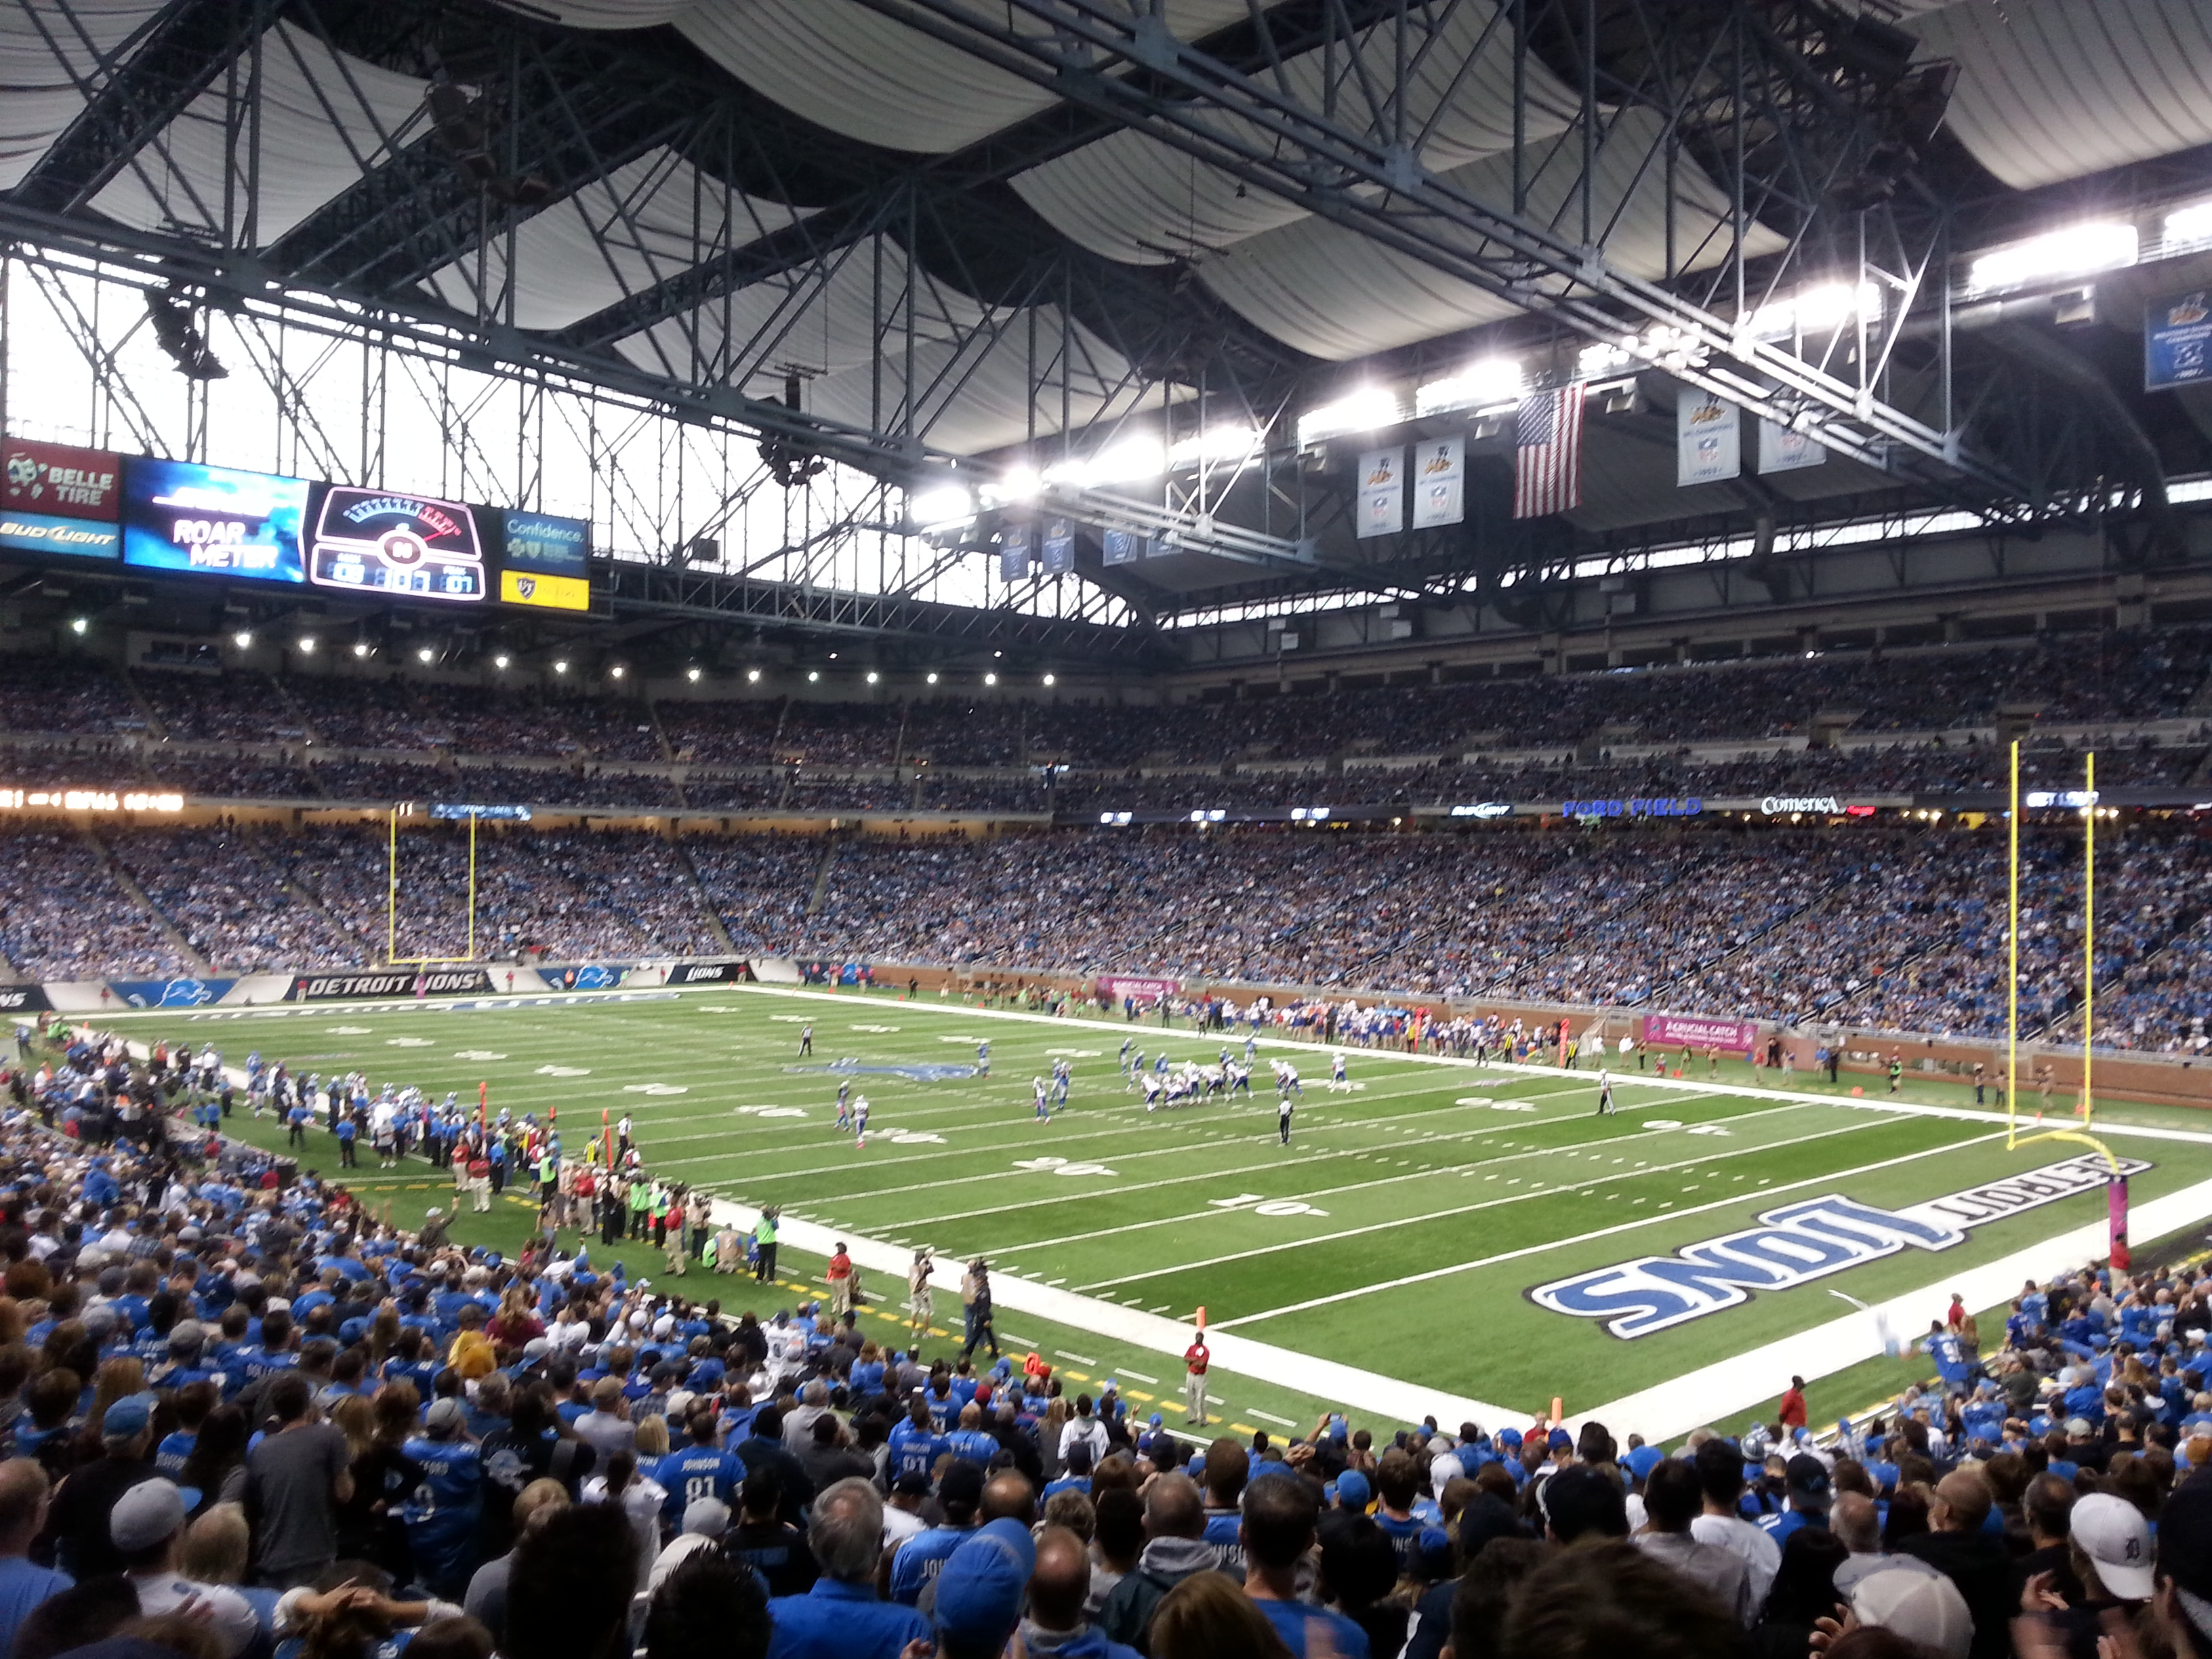 The Detroit Lions take on the Buffalo Bills at Ford Field. (Photo by Cheryl Johnstone)